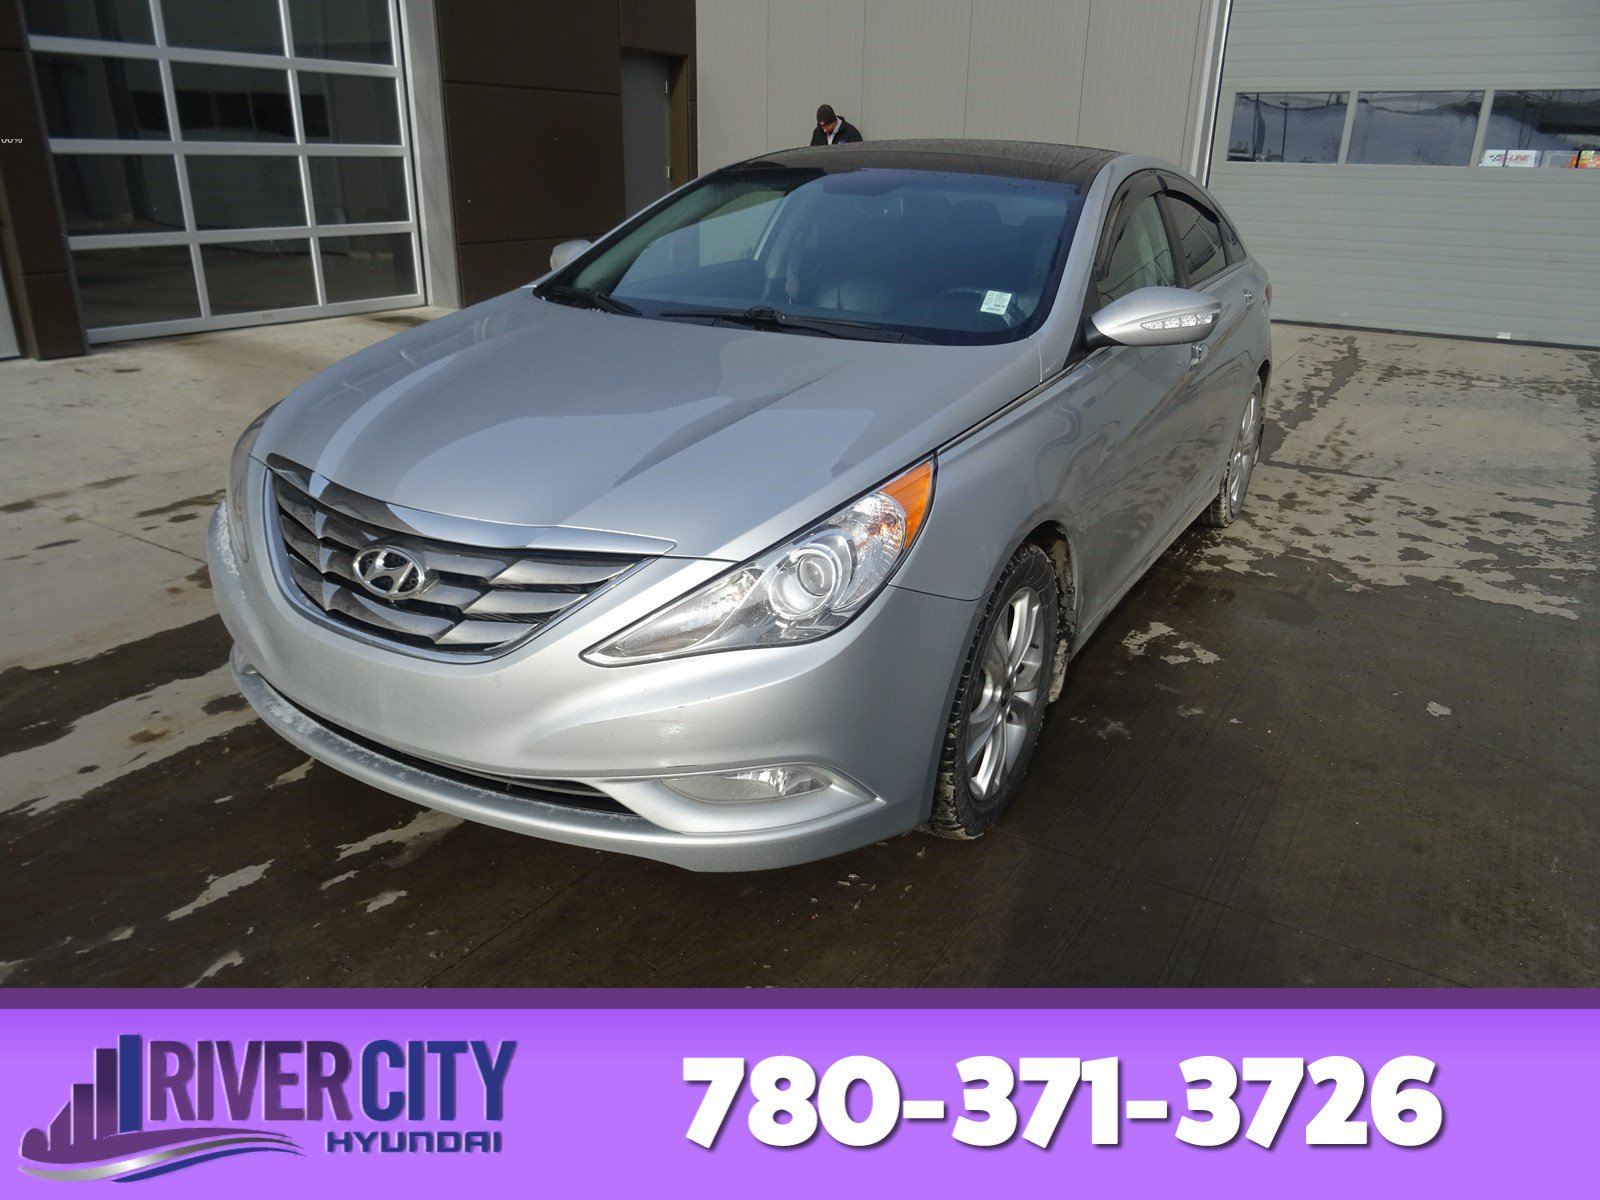 Photo Pre-Owned 2012 Hyundai Sonata LIMITED WITH NAV Navigation GPS, Leather, Heated Seats, Panoramic Roof, Back-up Cam, Bluetoot